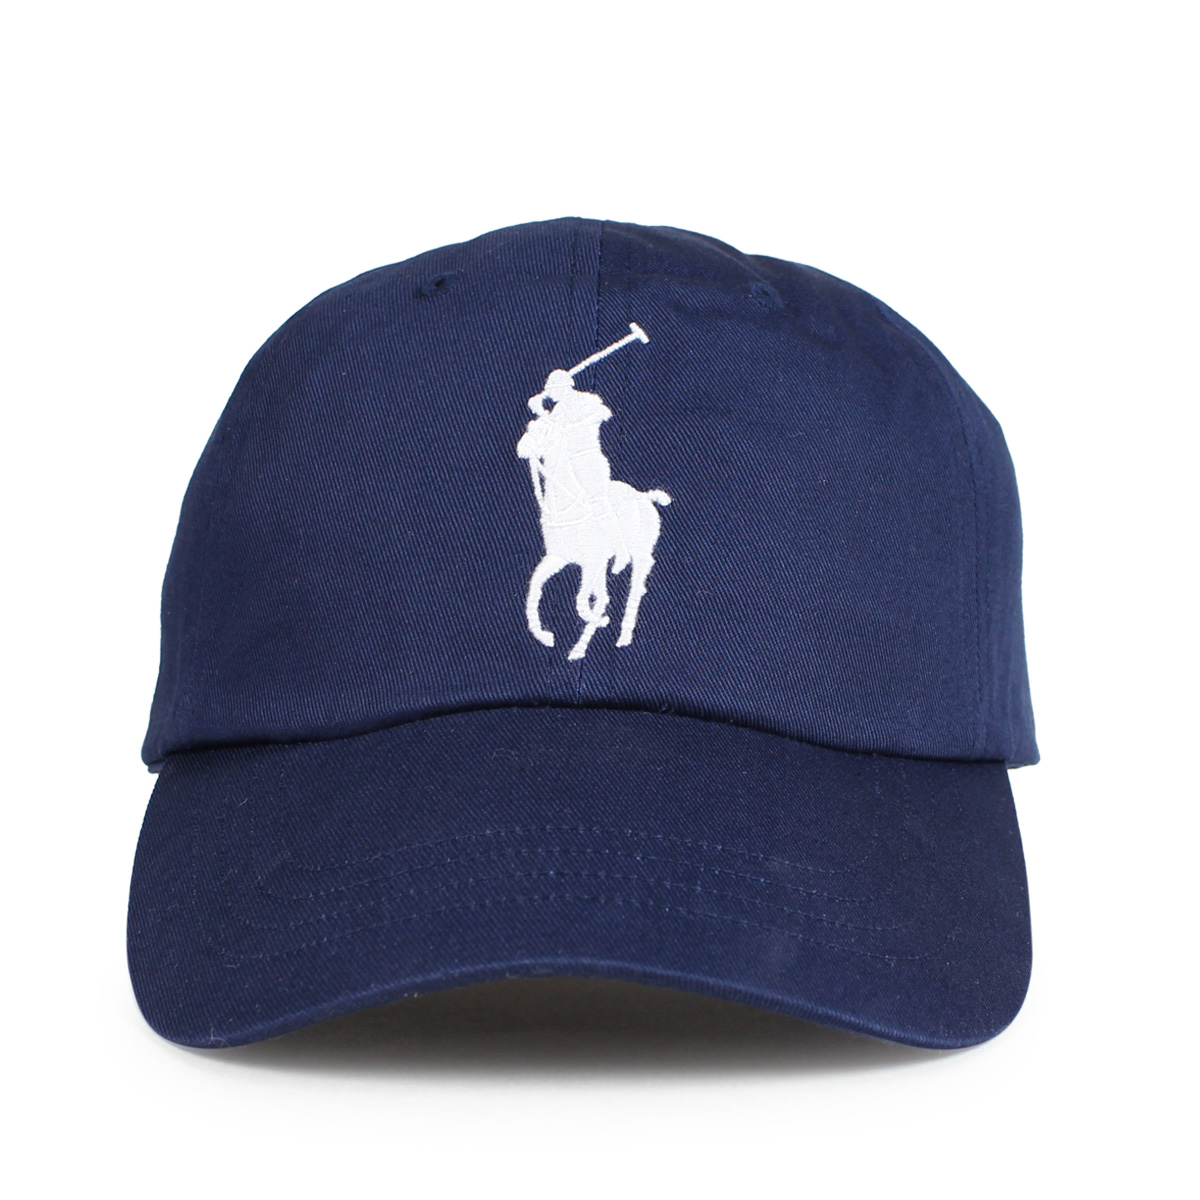 7da9da5eba2e3 POLO RALPH LAUREN BIG PONY CHINO BASEBALL CAP polo Ralph Lauren cap hat men  gap Dis cotton navy 710673584013  1 15 Shinnyu load   191